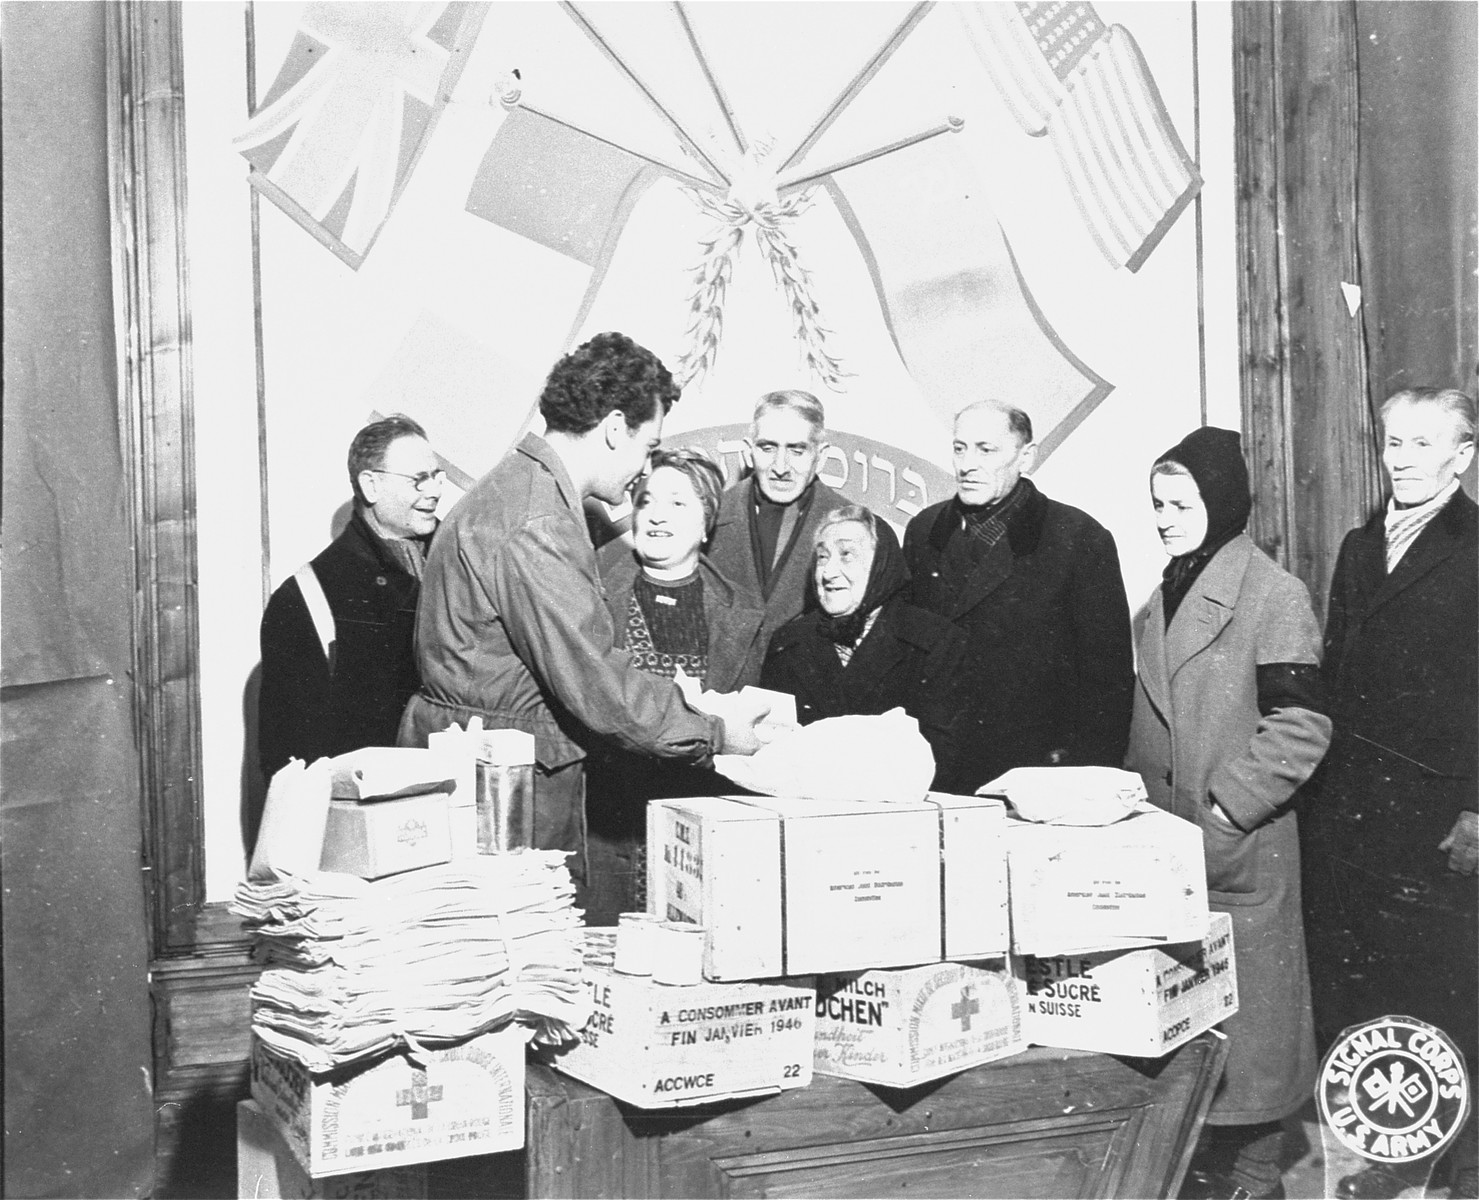 Harry Weinsaft of the American Jewish Joint Distribution Committee, distributes Red Cross packages to Jewish DPs in Vienna.